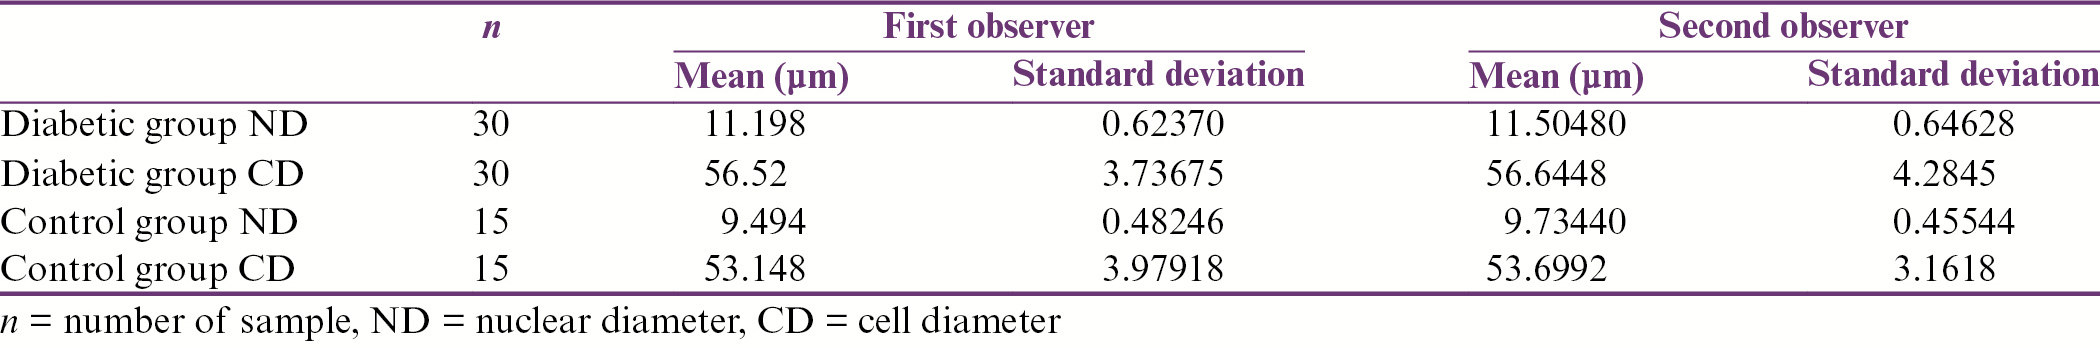 Table 4: Mean of the nuclear diameter and cell diameter of the exfoliated cells of the buccal mucosa of diabetic group and control group by the first observer and second observer